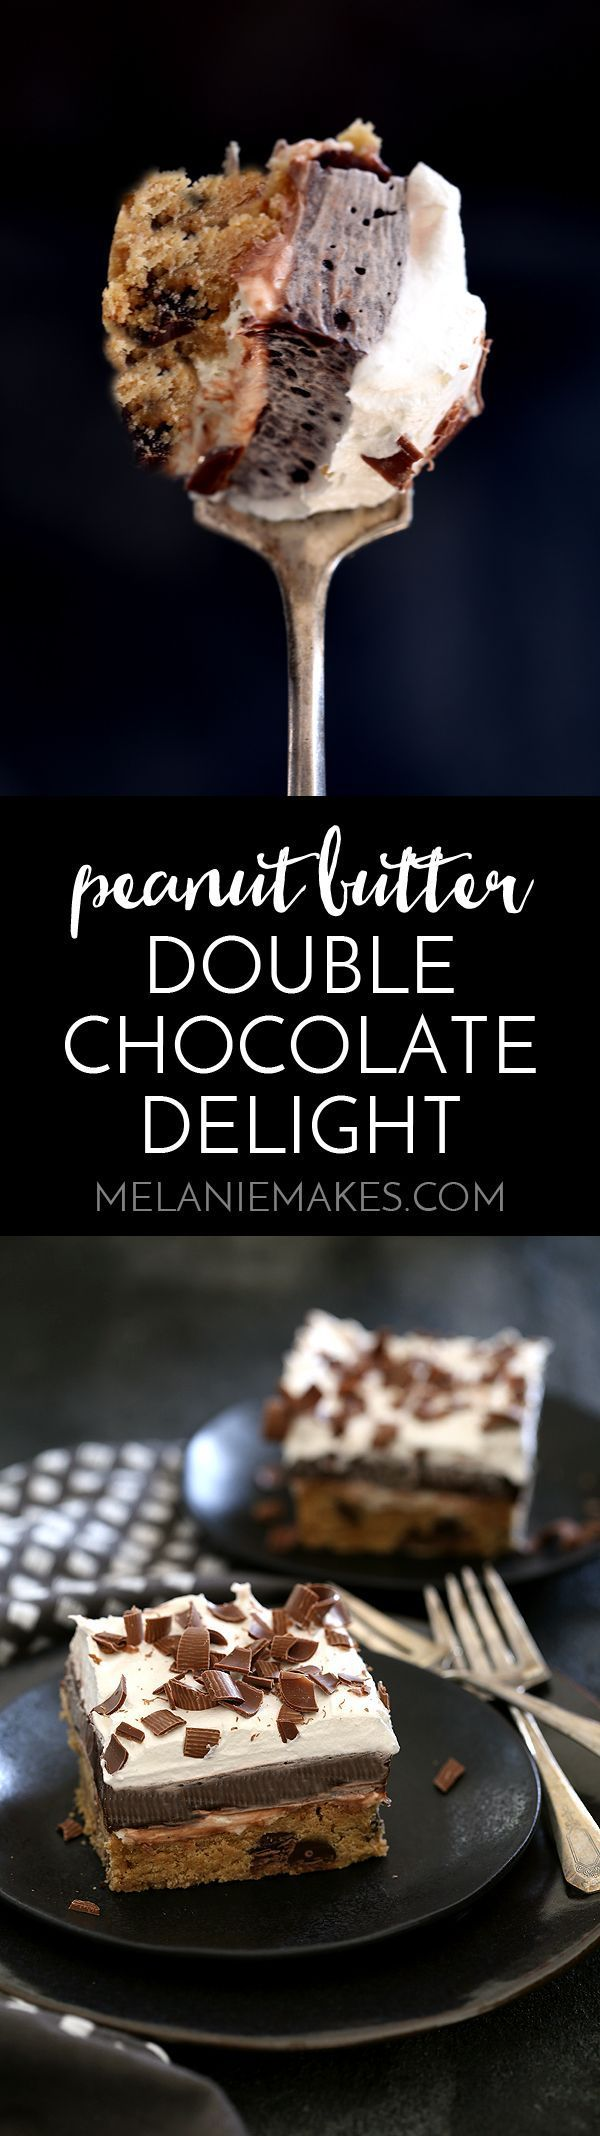 Best 25+ Chocolate delight ideas on Pinterest | Chocolate pudding ...